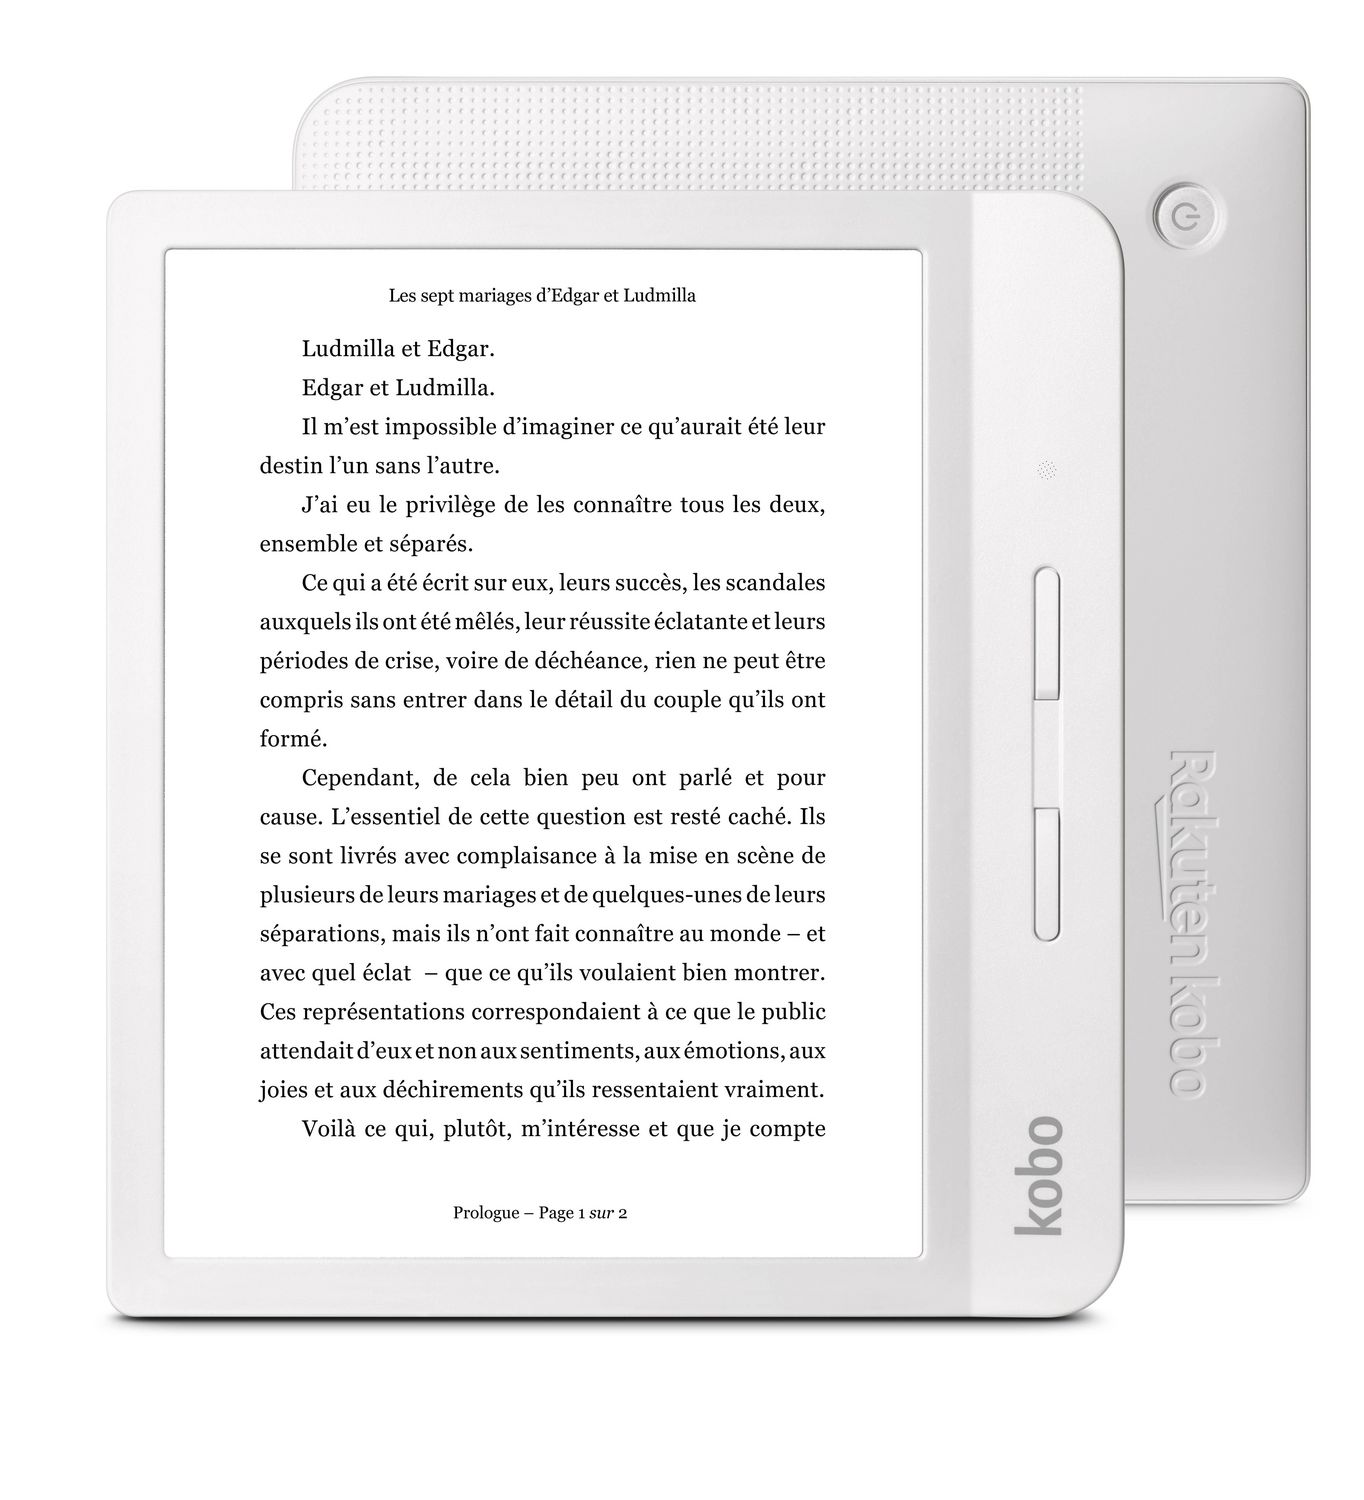 Best gifts for mom - Kobo Libra H2O - For the mom who loves to read